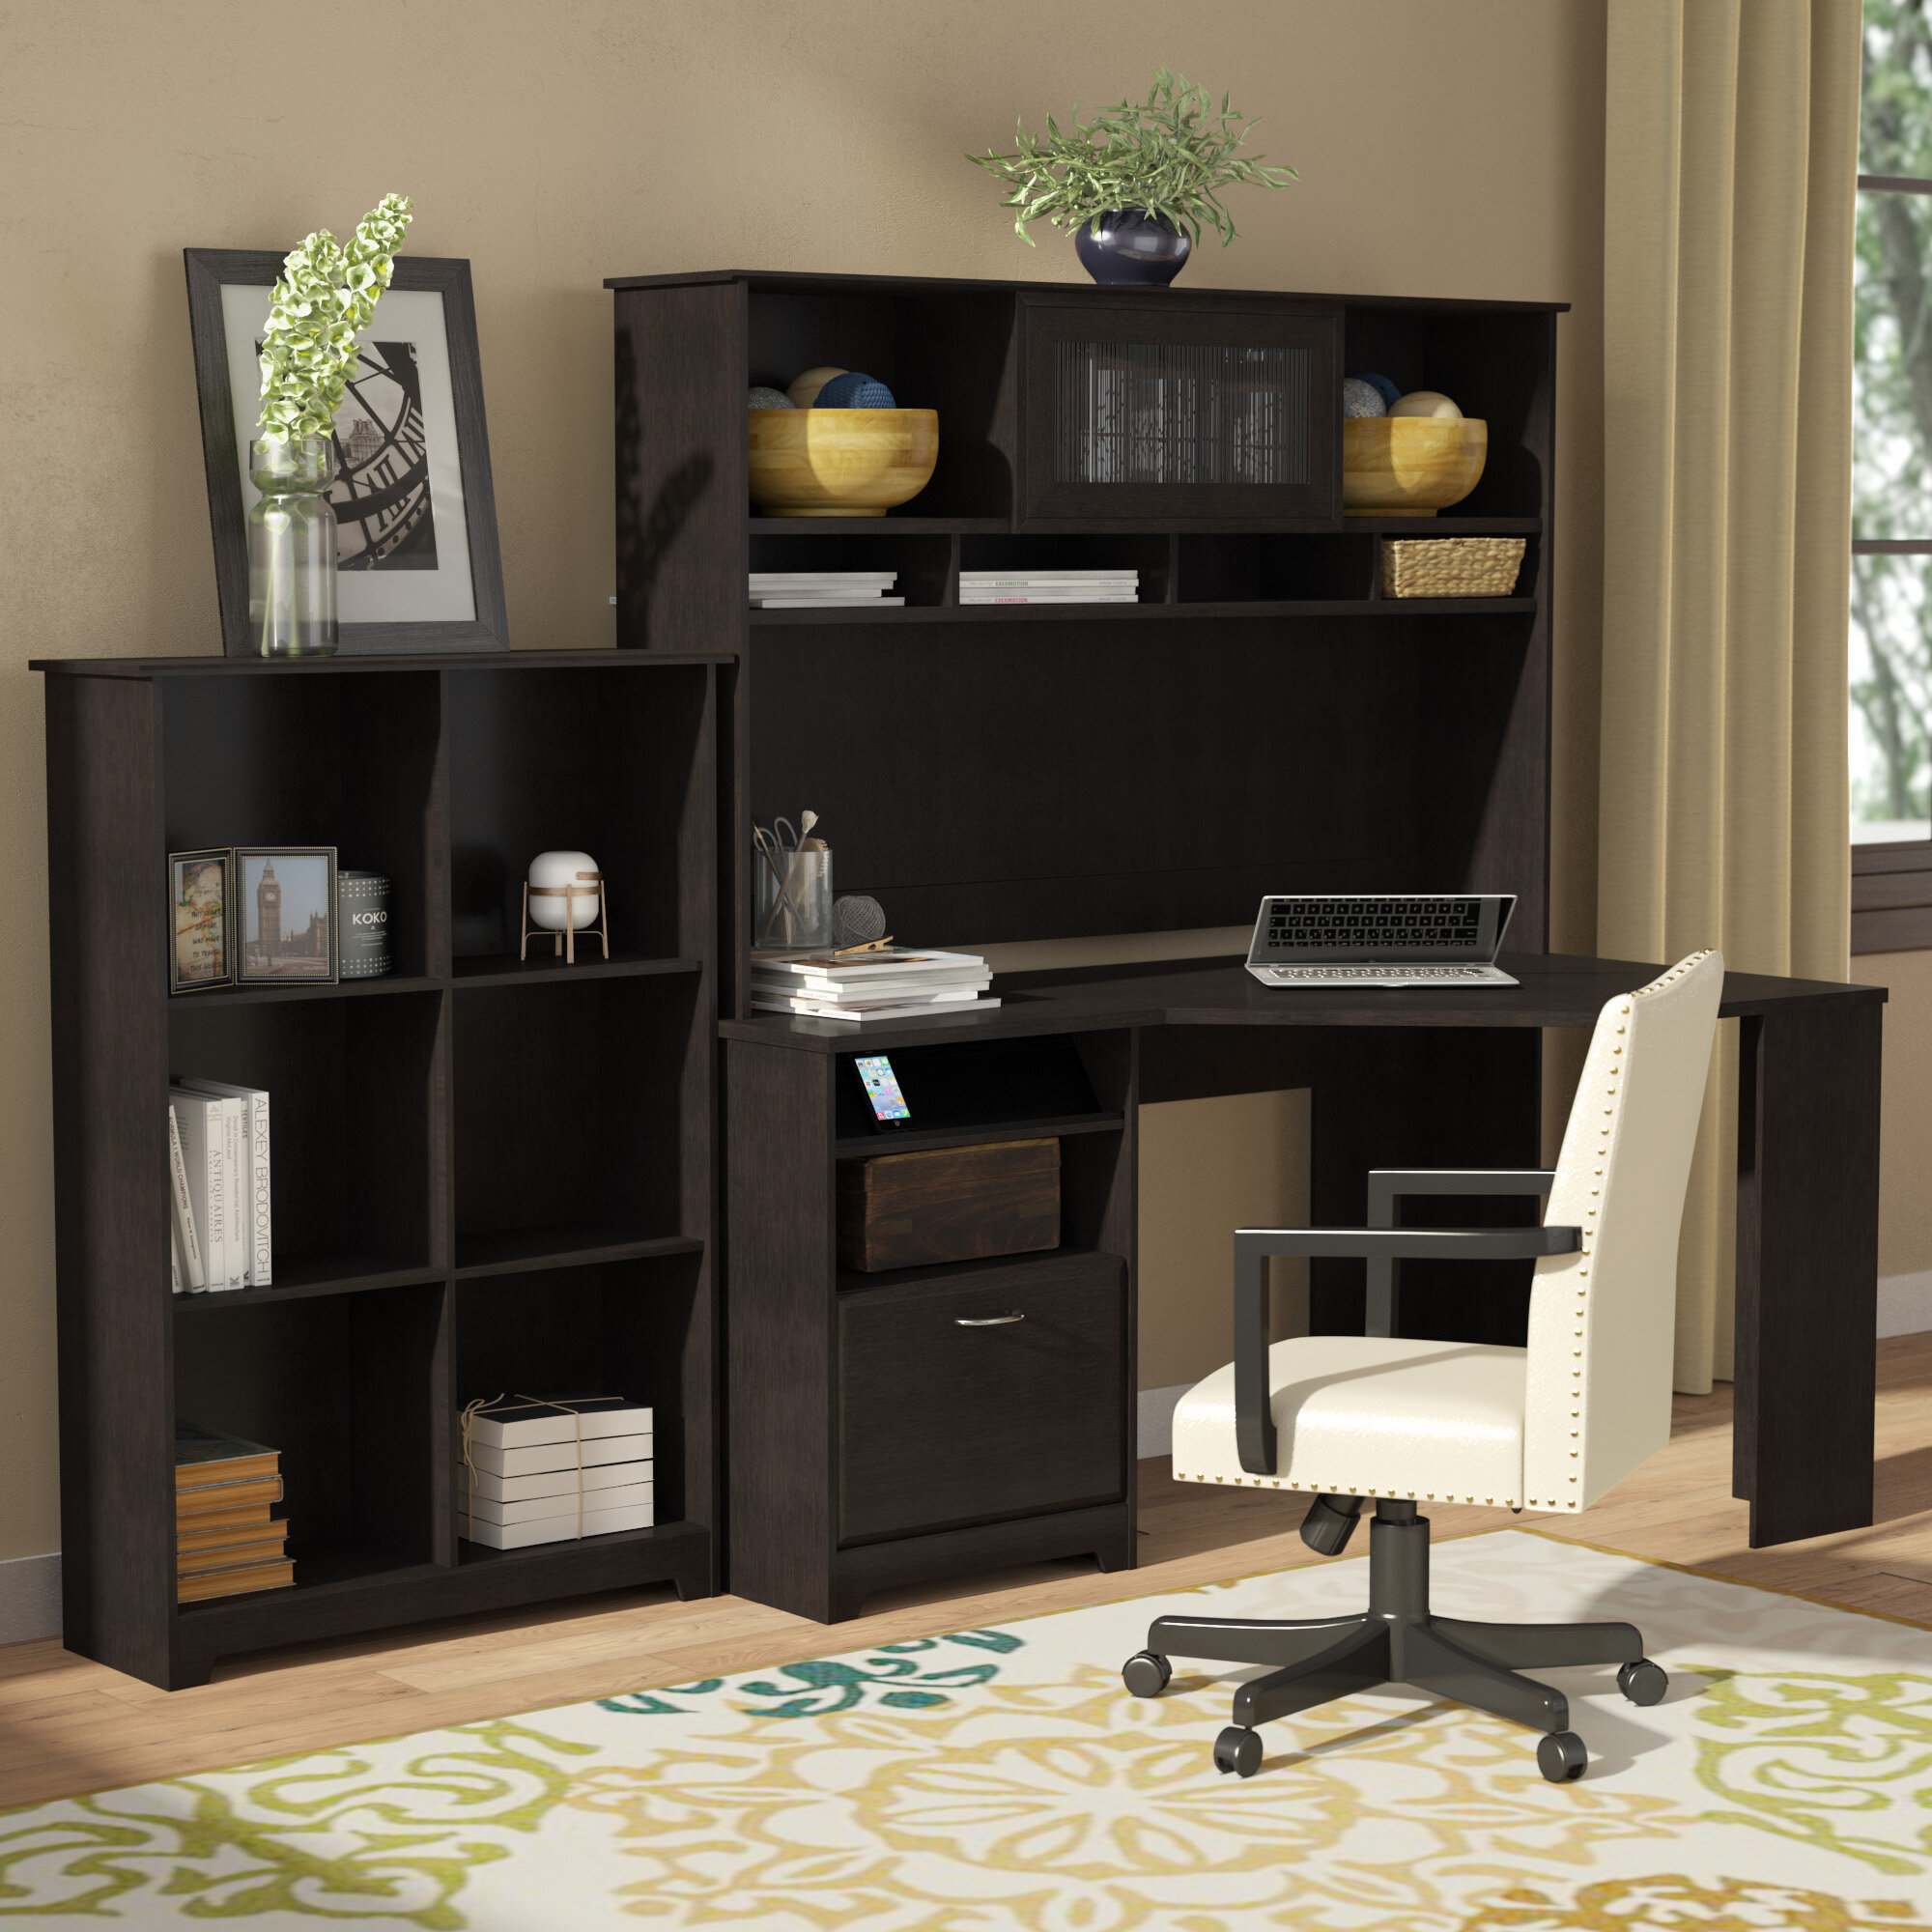 Red Barrel Studio Hilale Corner Desk With Hutch And Bookcase Reviews Wayfair